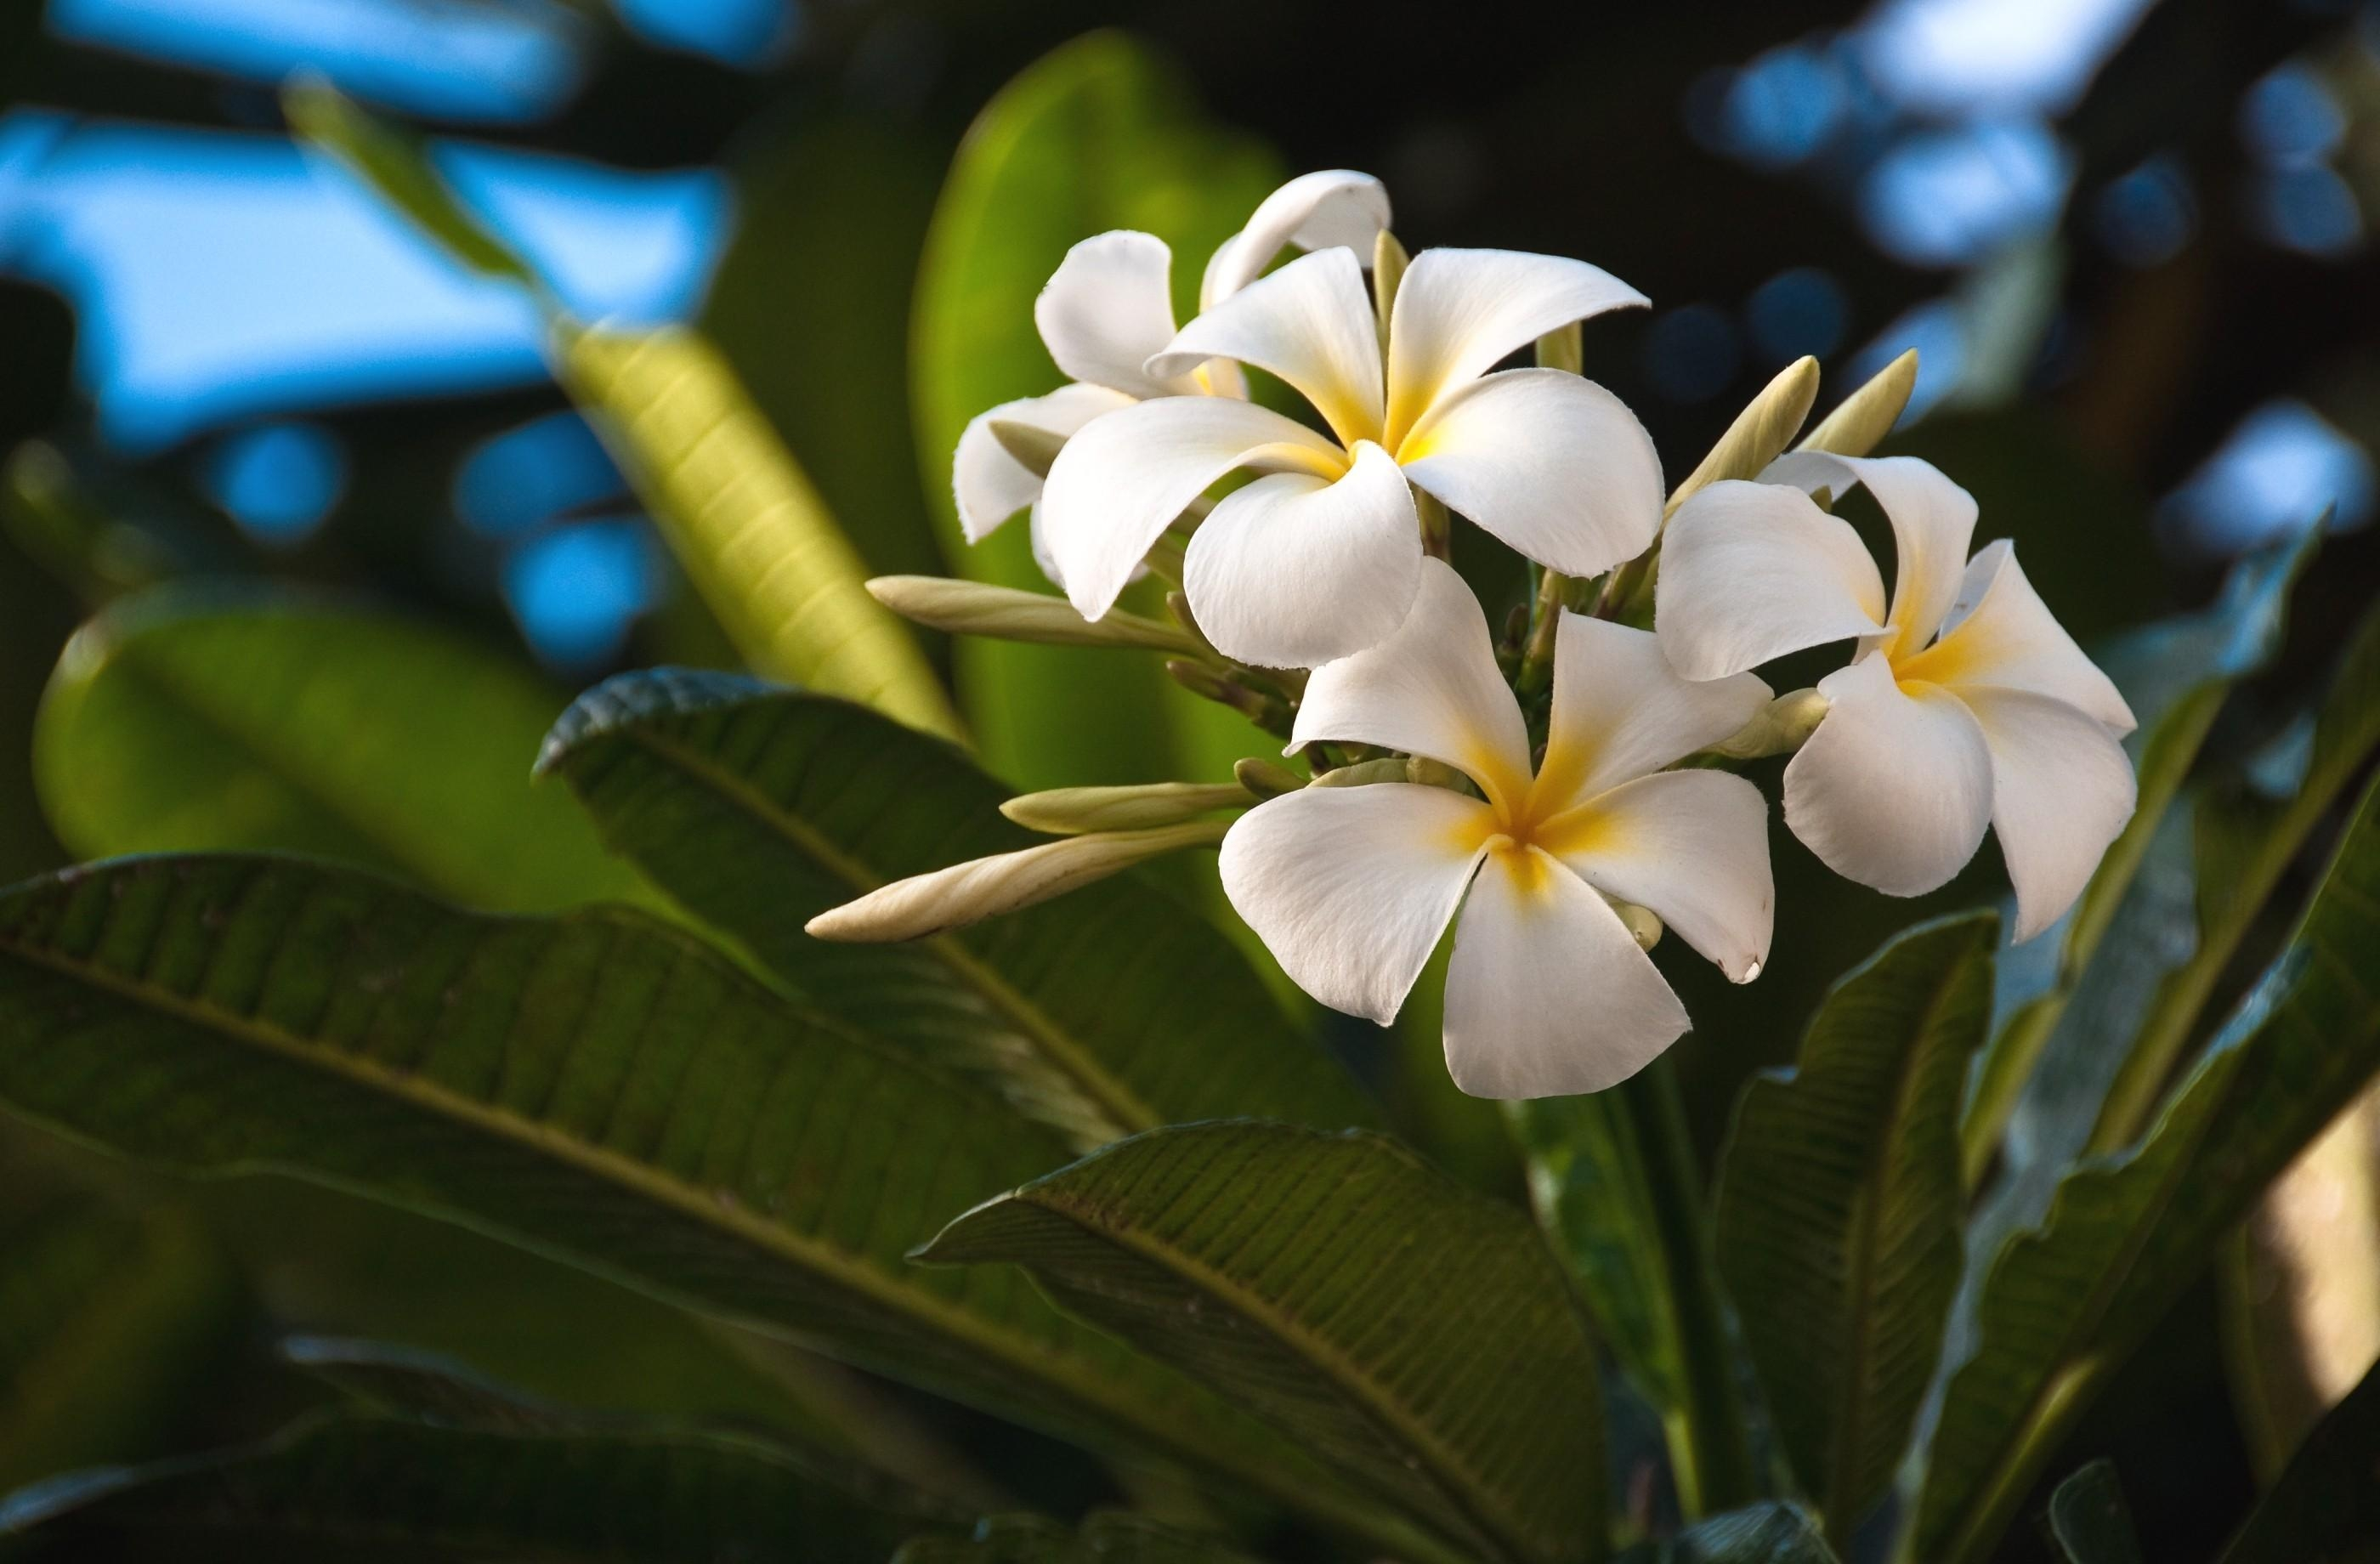 59709 download wallpaper Flowers, Leaves, Exotic, Exotics, Plumeria screensavers and pictures for free